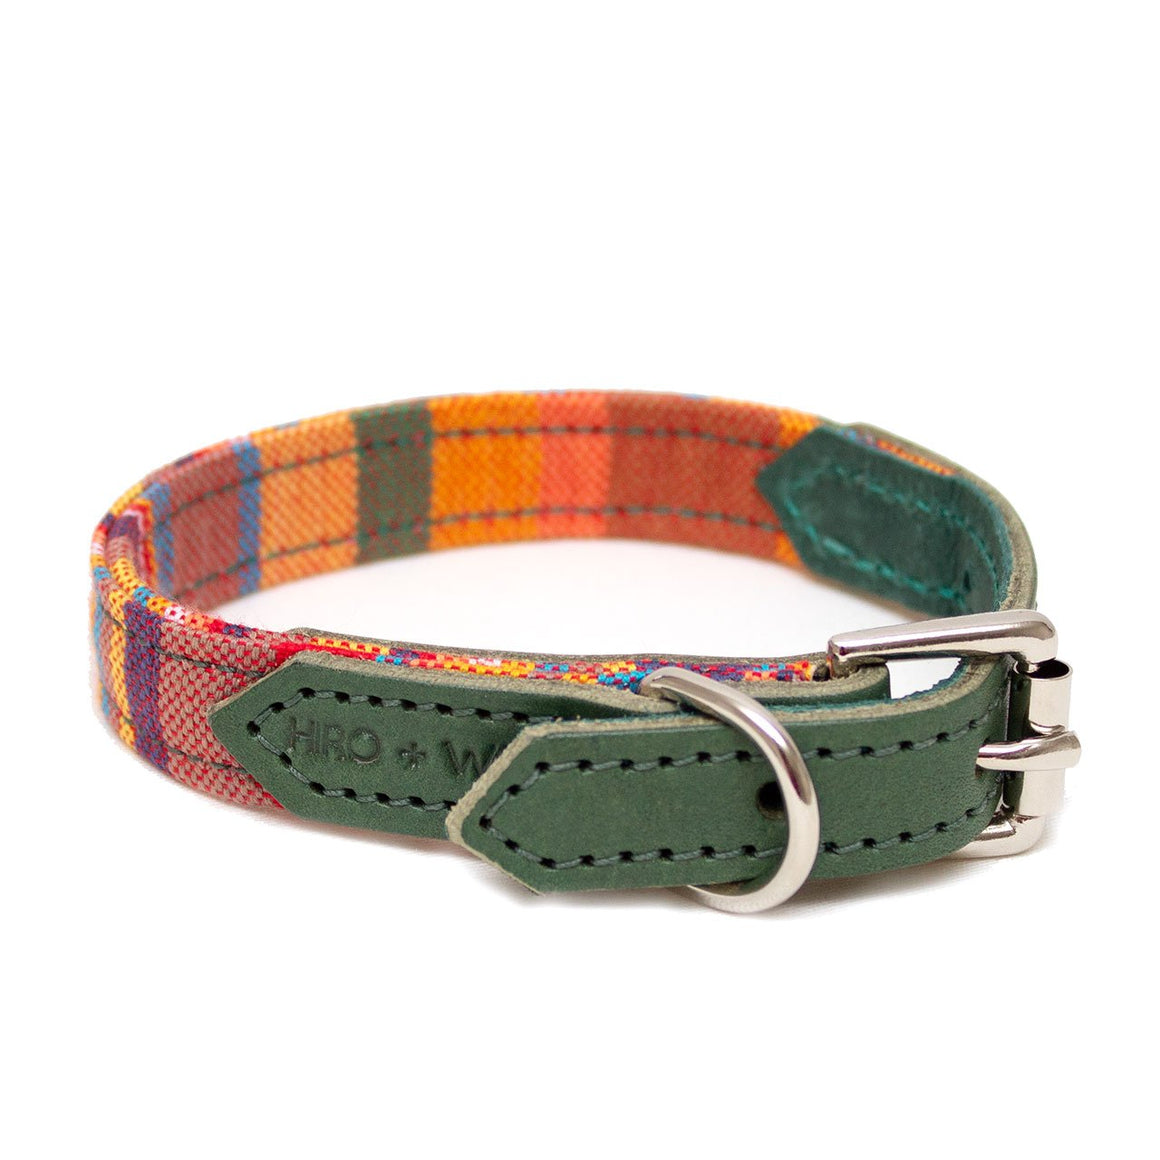 Coastal Kikoy Dog Collar